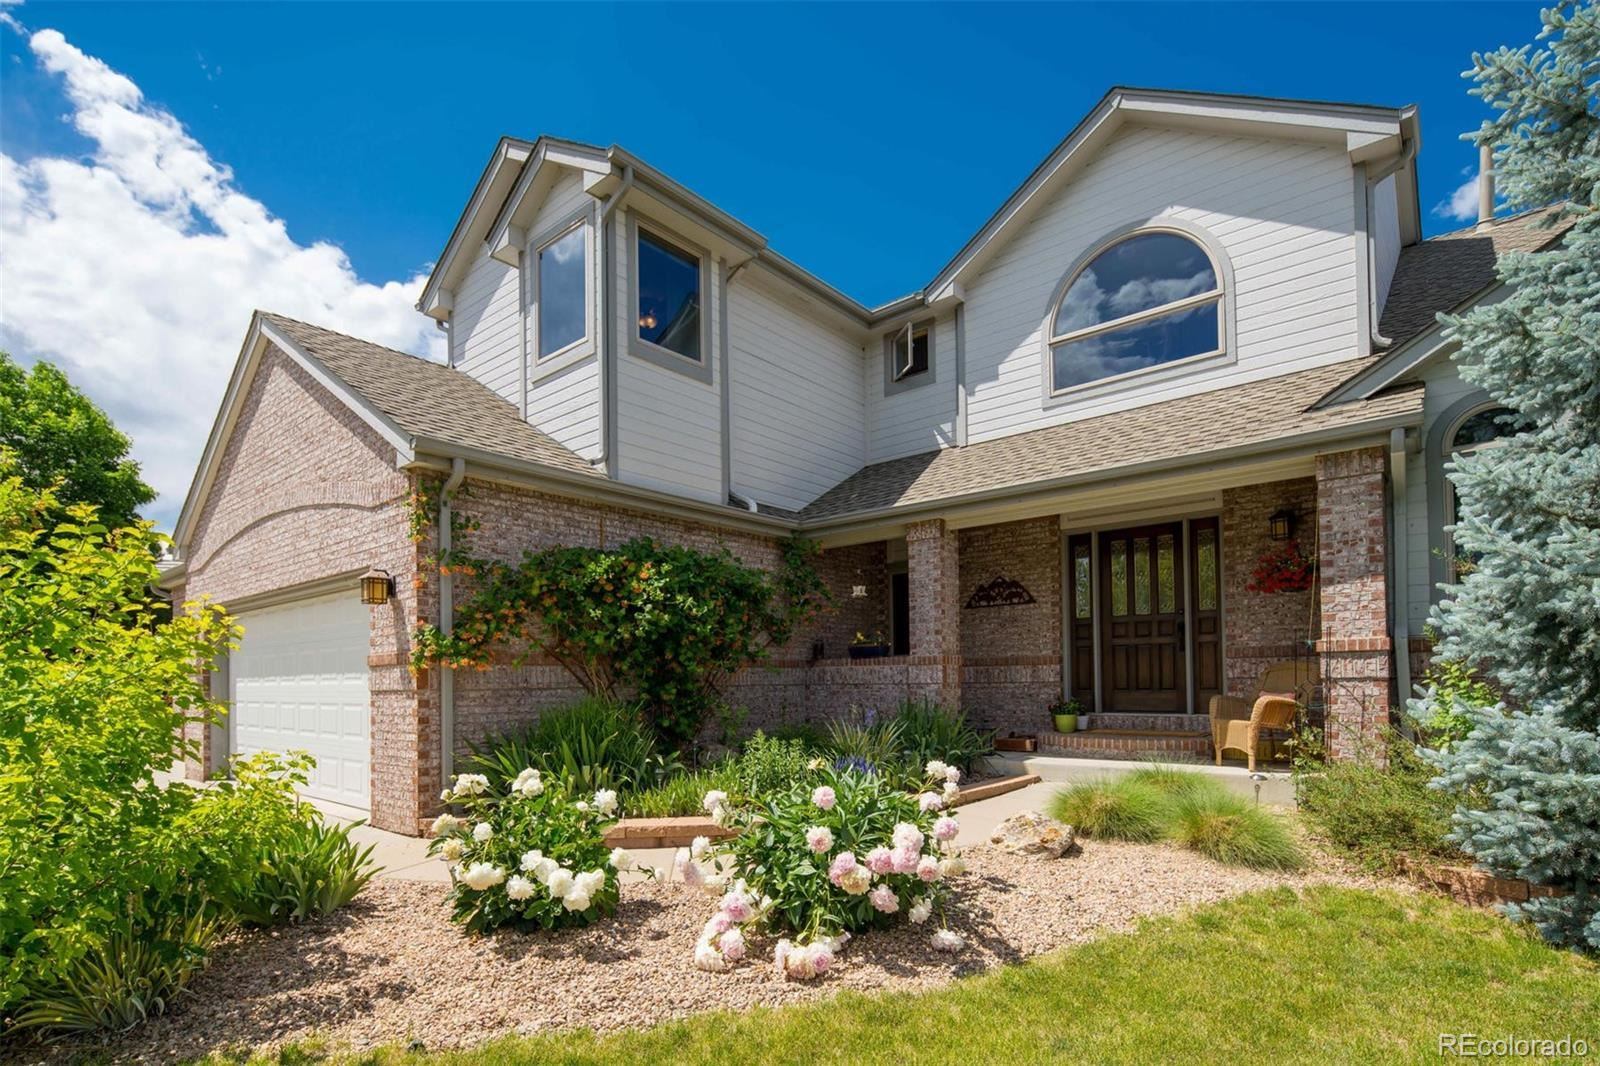 14431 W 56th Place, Arvada, CO 80002 - #: 6031422